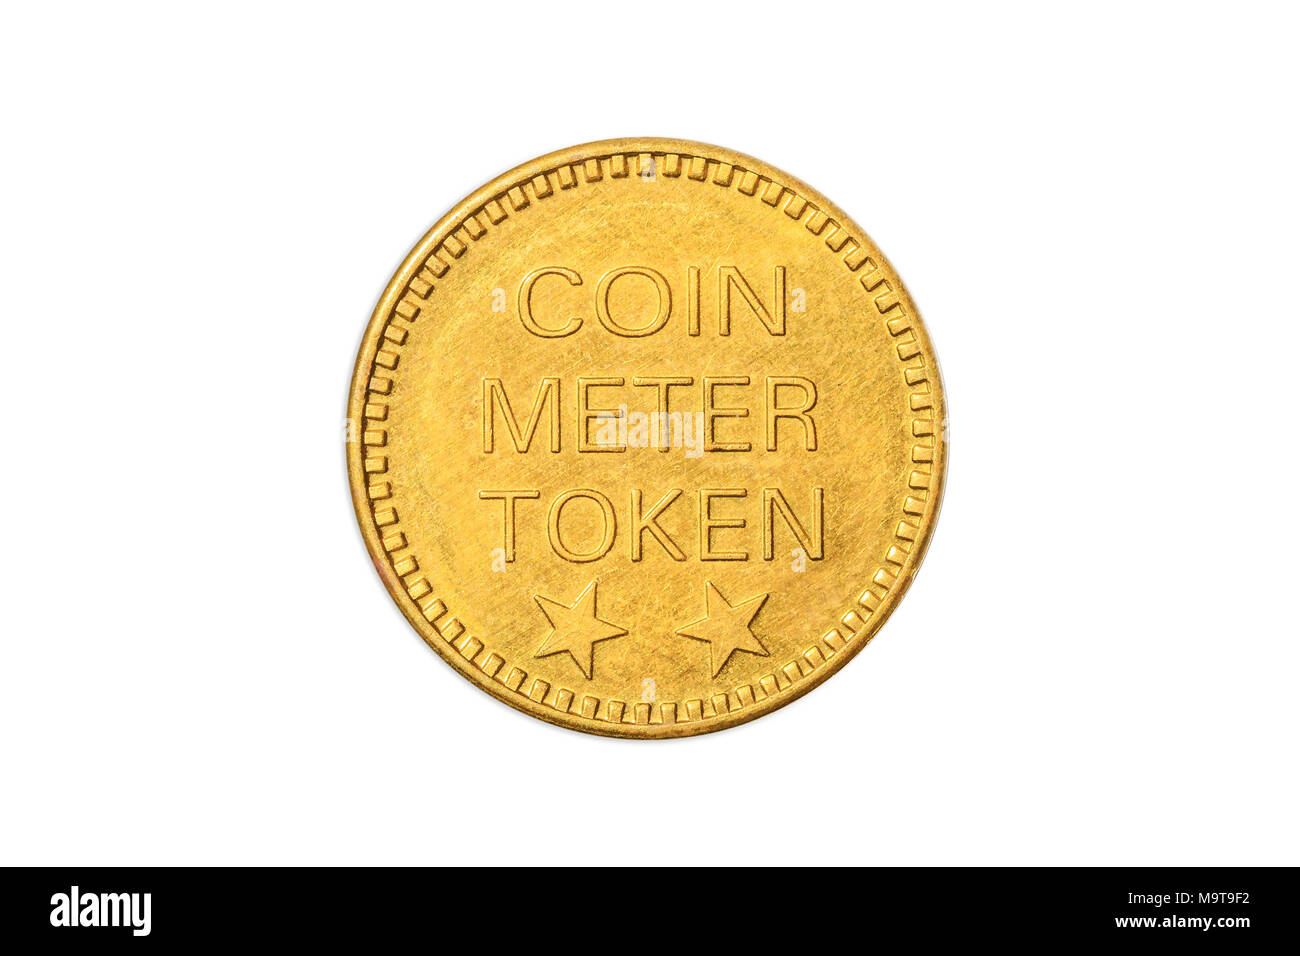 American golden coin meter token with the side of gold stars of America, close up of the tail side with the two stars. Isolated on white studio background. - Stock Image